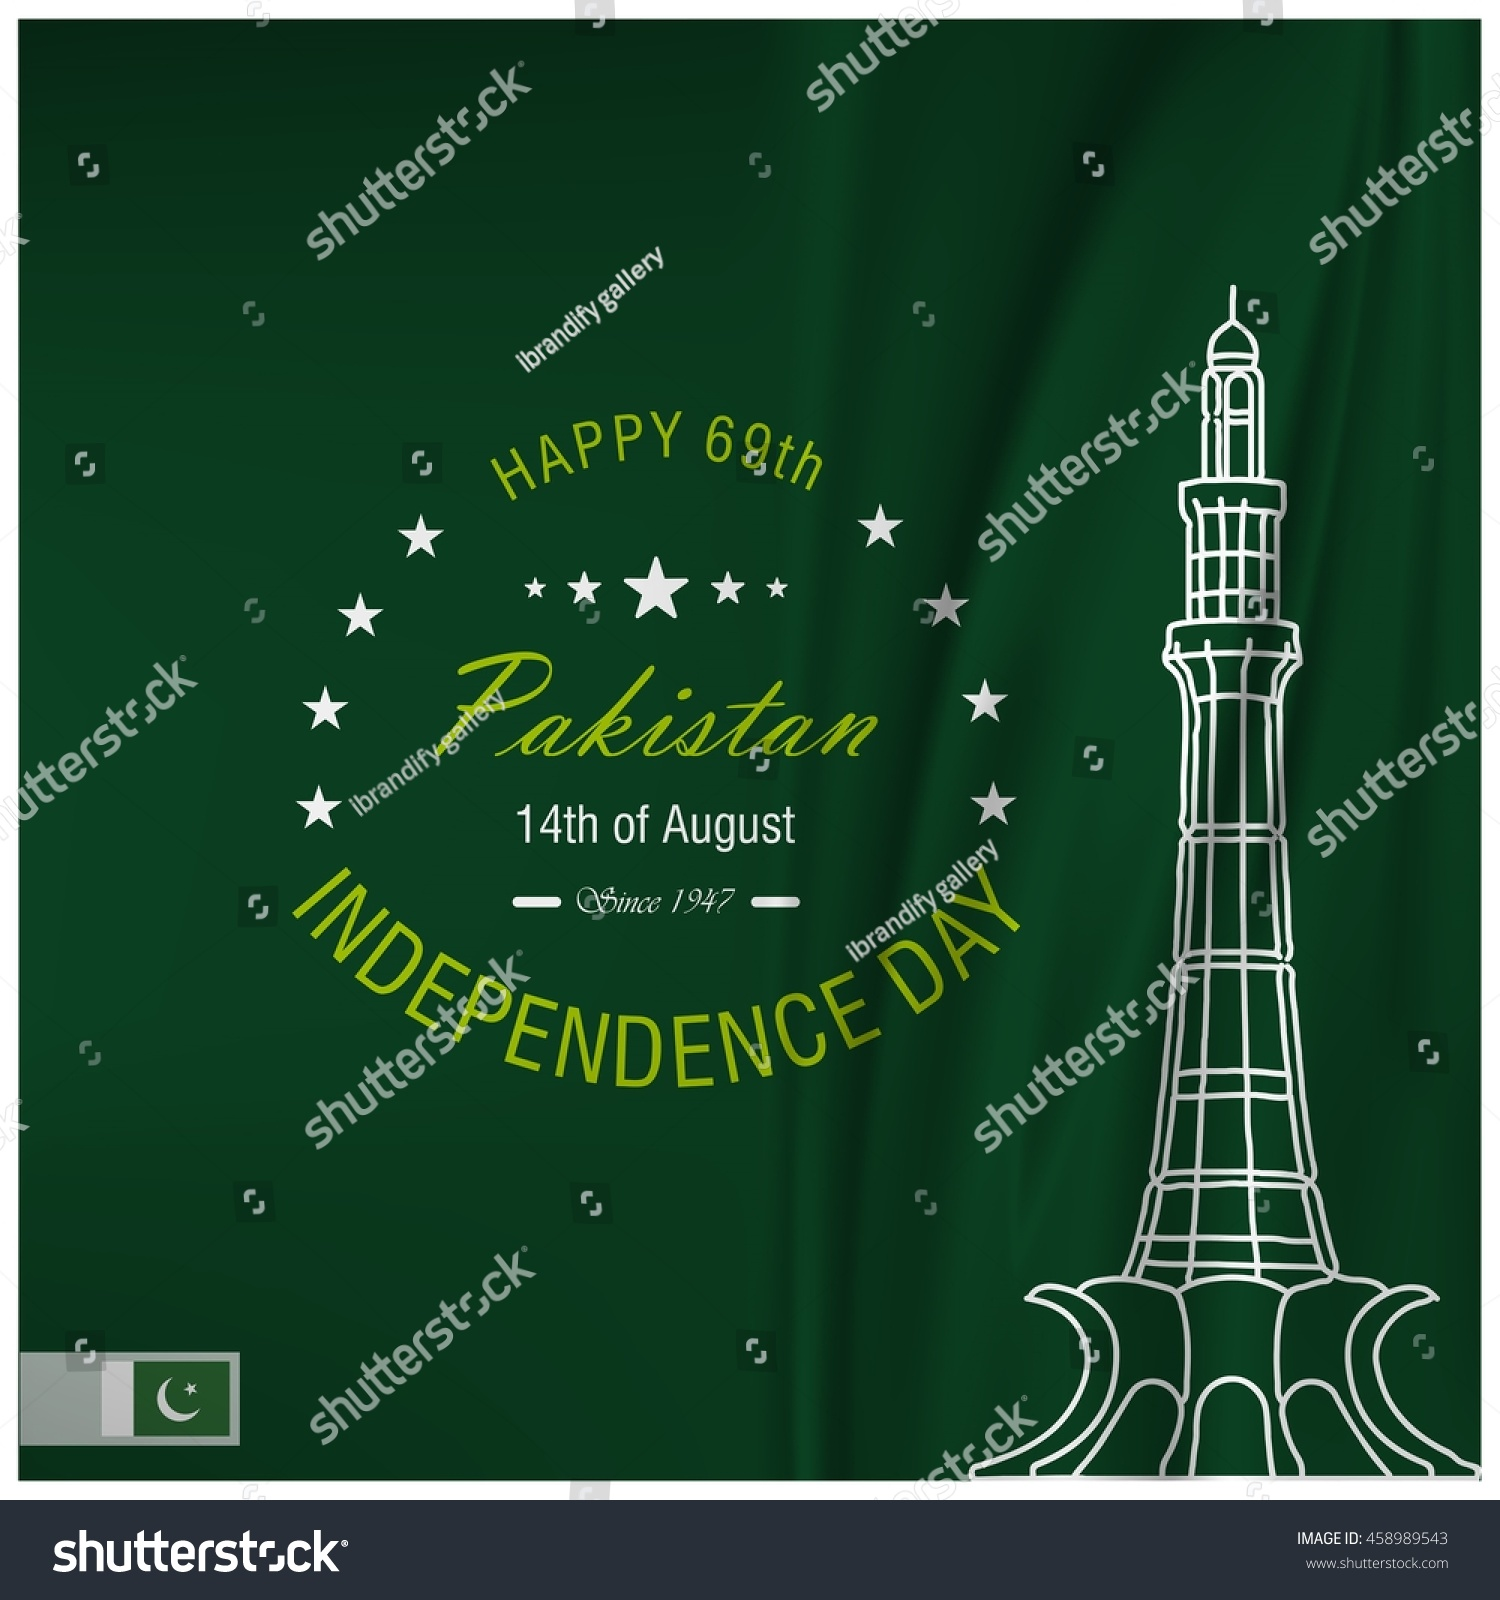 Minarepakistan Creative Label Curtain Background Pakistan Image